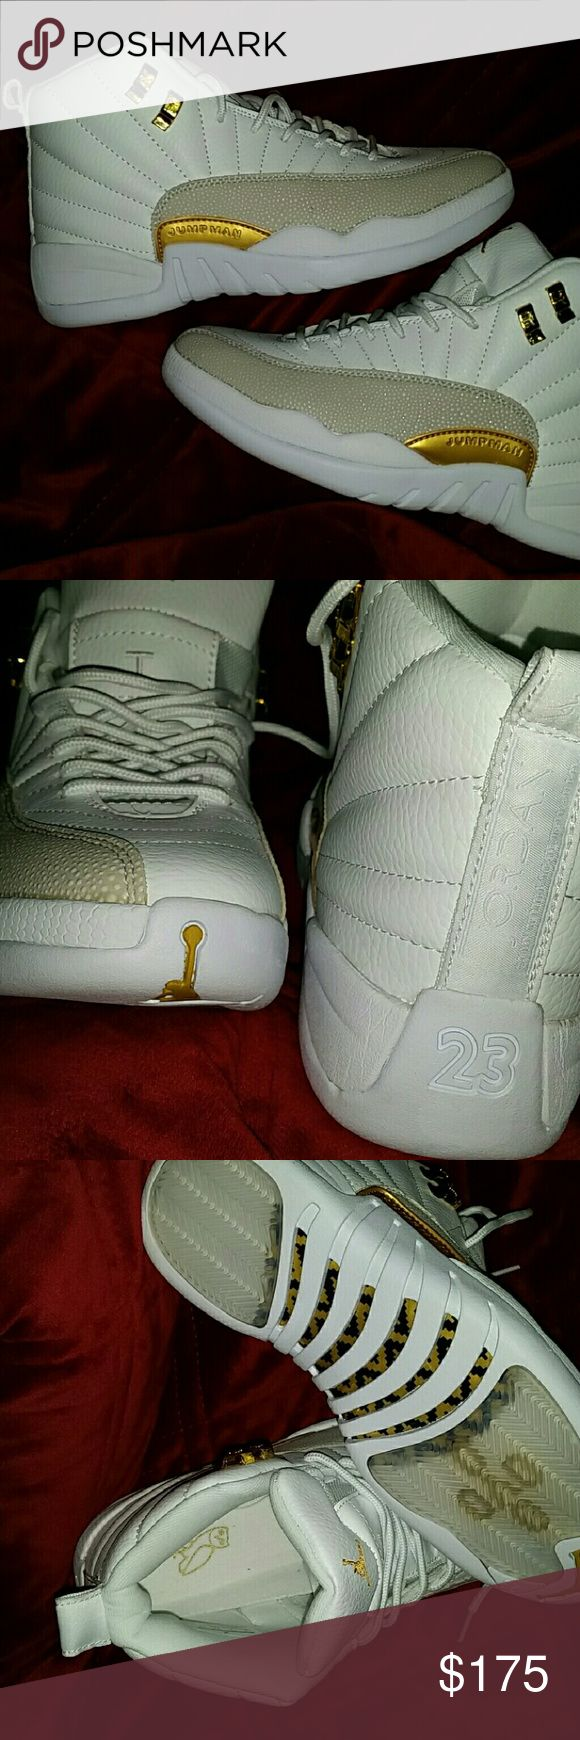 Jordan retro 12's ovo size 8 men's Never worn Jordan retro 12 ovo was sent the wrong size and they didn't have the correct size to switch them trying to get some of my money back size 8 in men's Jordan Shoes Athletic Shoes